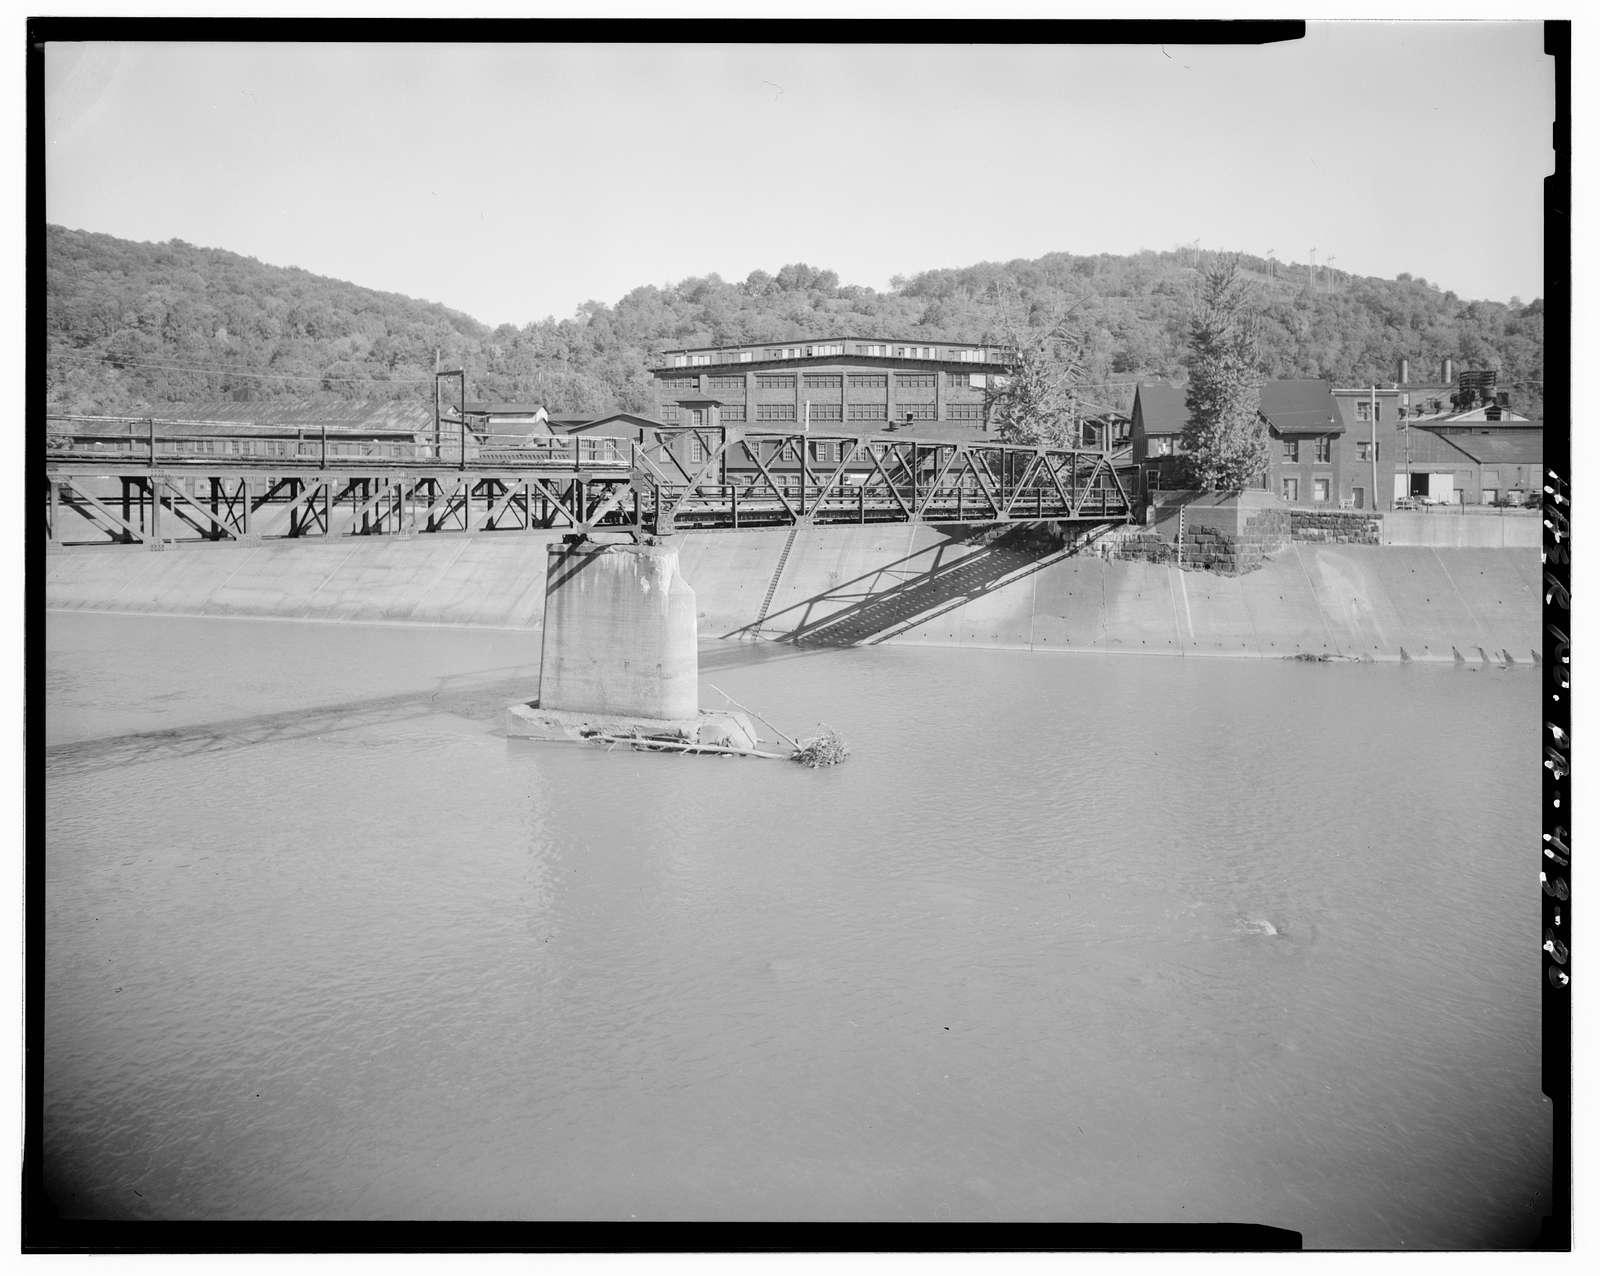 Johnstown Local Flood Protection Project, Beginning on Conemaugh River approx 3.8 miles downstream from confluence of Little Conemaugh & Stony Creek Rivers at Johnstown, Johnstown, Cambria County, PA